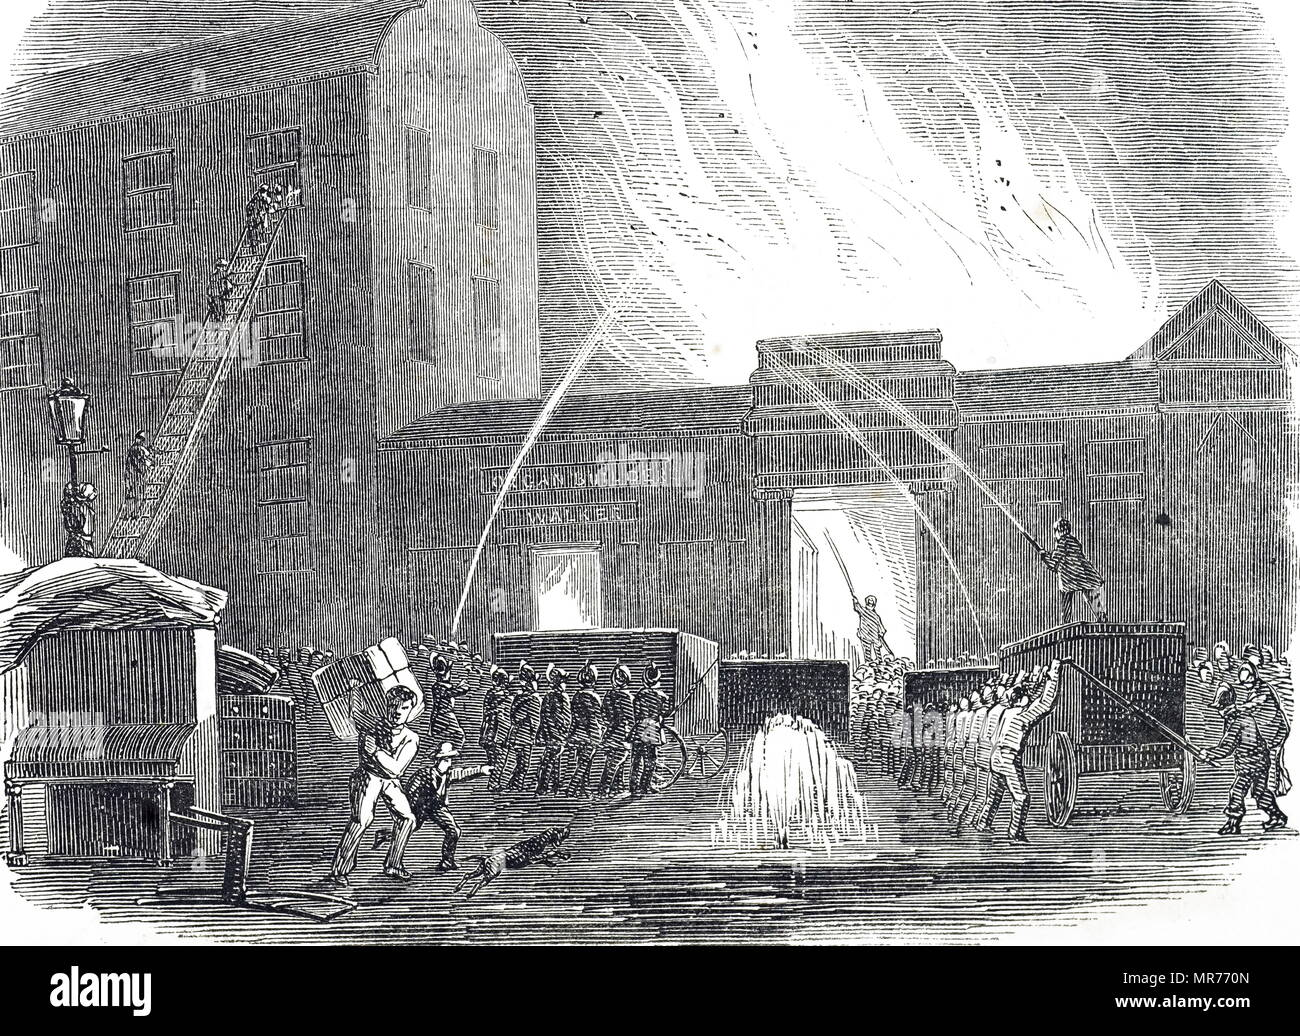 Engraving depicting fire-fighters battle a blaze near Tottenham Court Road, London. The appliances being used here are of the chest type and were worked by teams of men on either side of the appliance working pumps to produce a jet of water. Dated 19th century - Stock Image